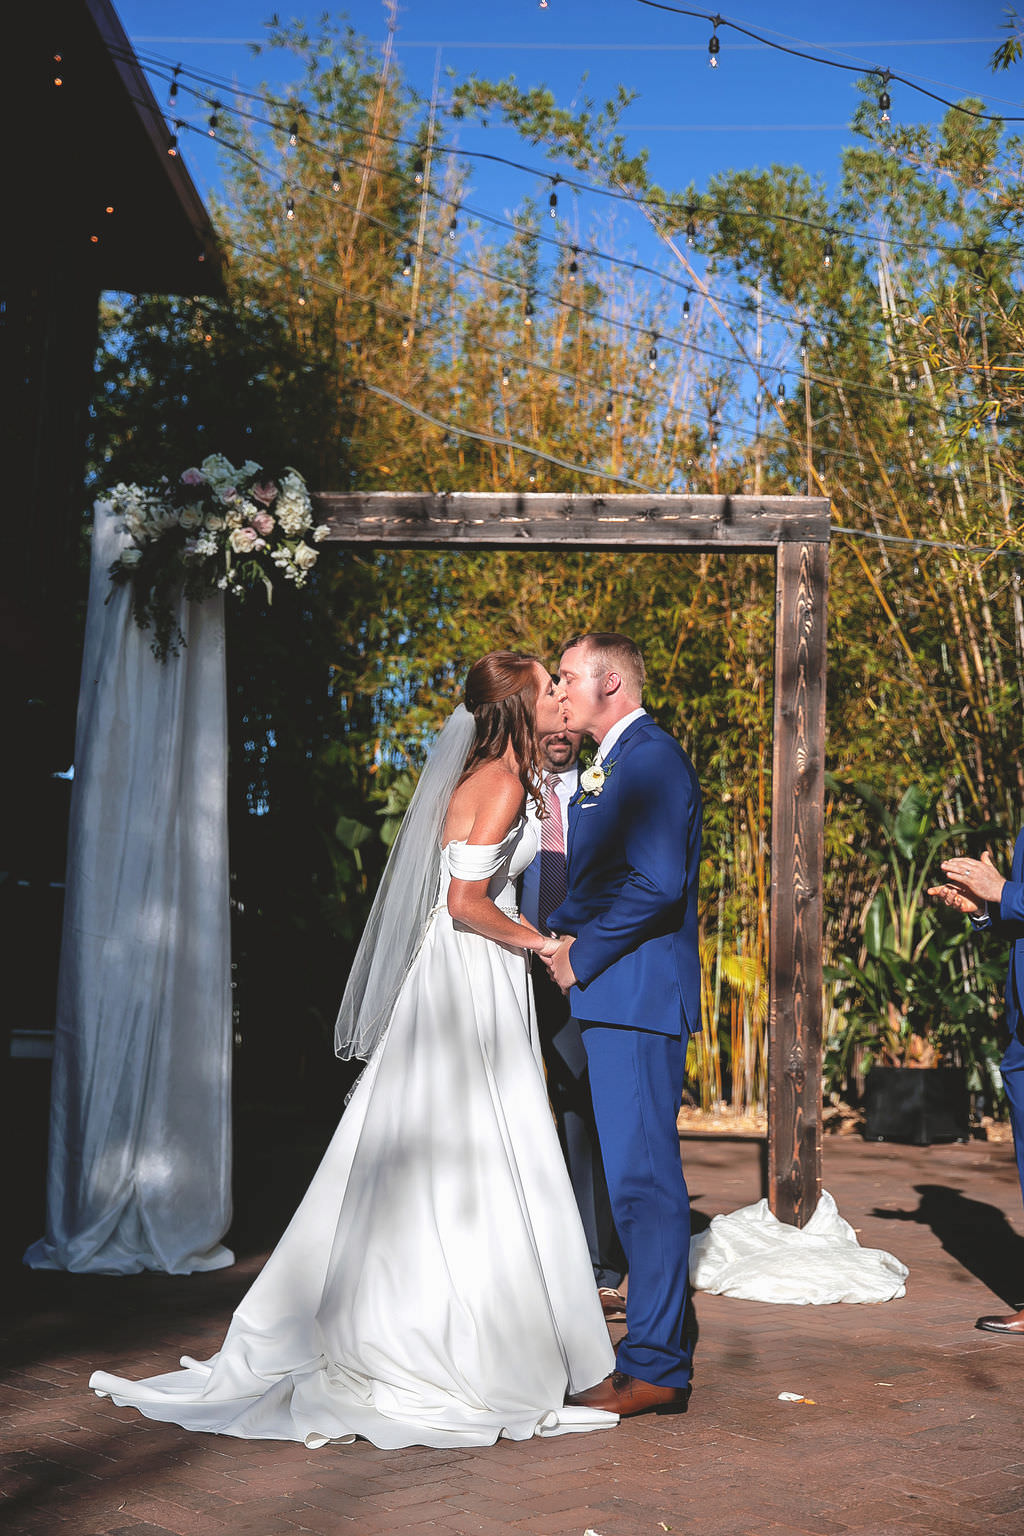 Tampa Bay Bride and Groom First Kiss under Wooden Ceremony Arch in Downtown St. Pete Bamboo Garden   Florida Unique Wedding Venue NOVA 535